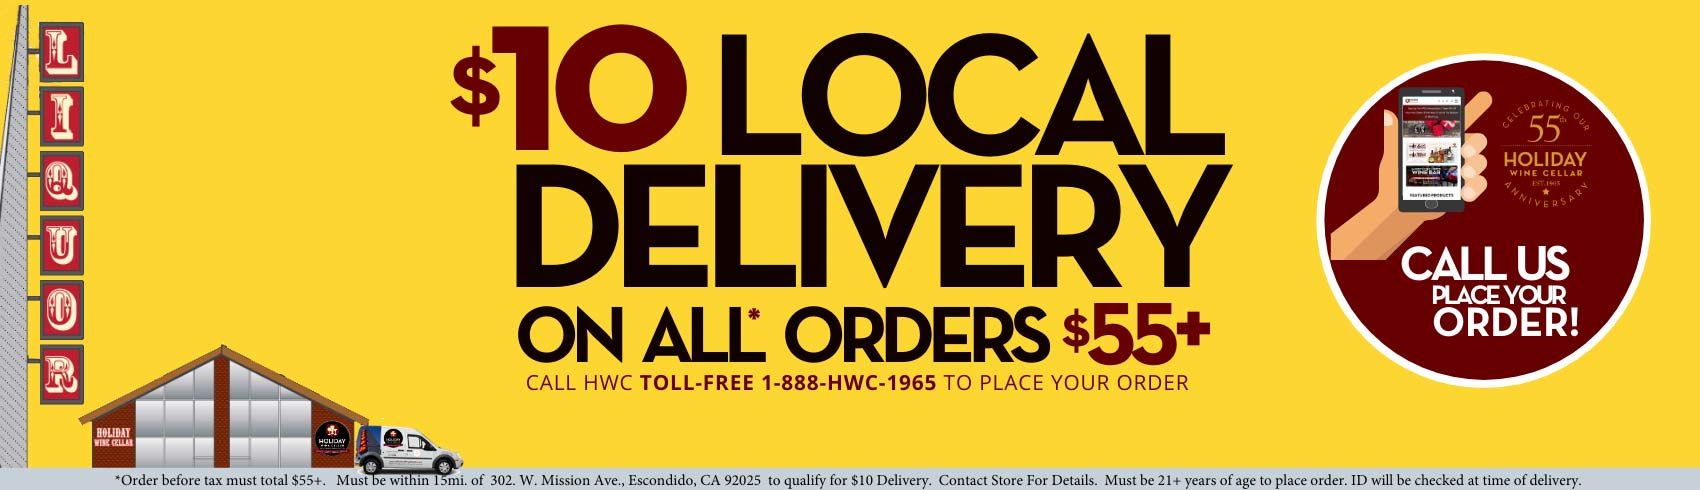 local-deliver-updated-03202020.jpg